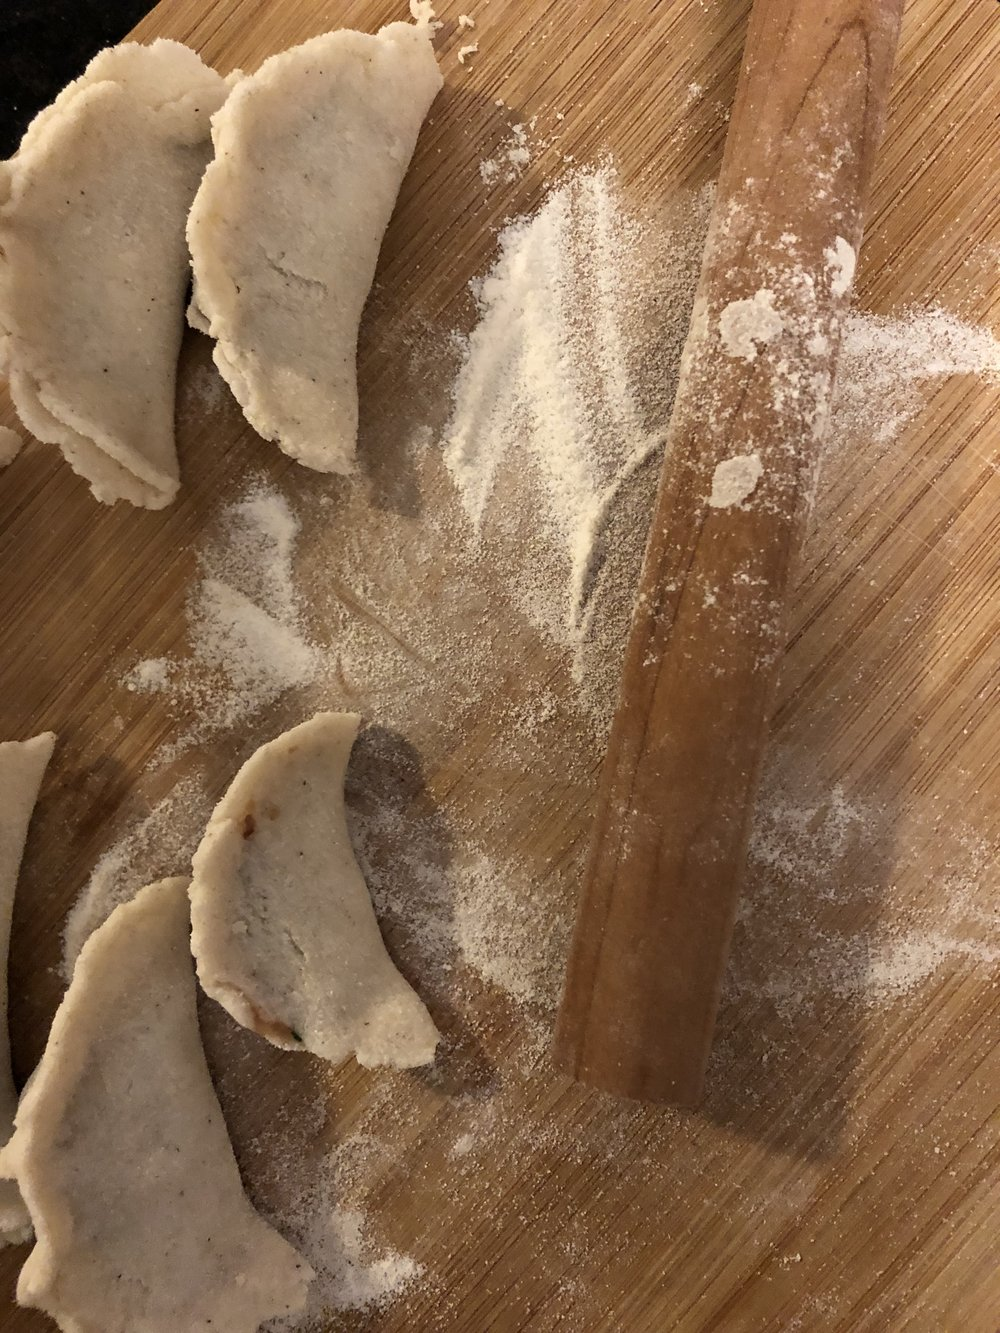 reserve some flour mixture to keep the dough from sticking to your board